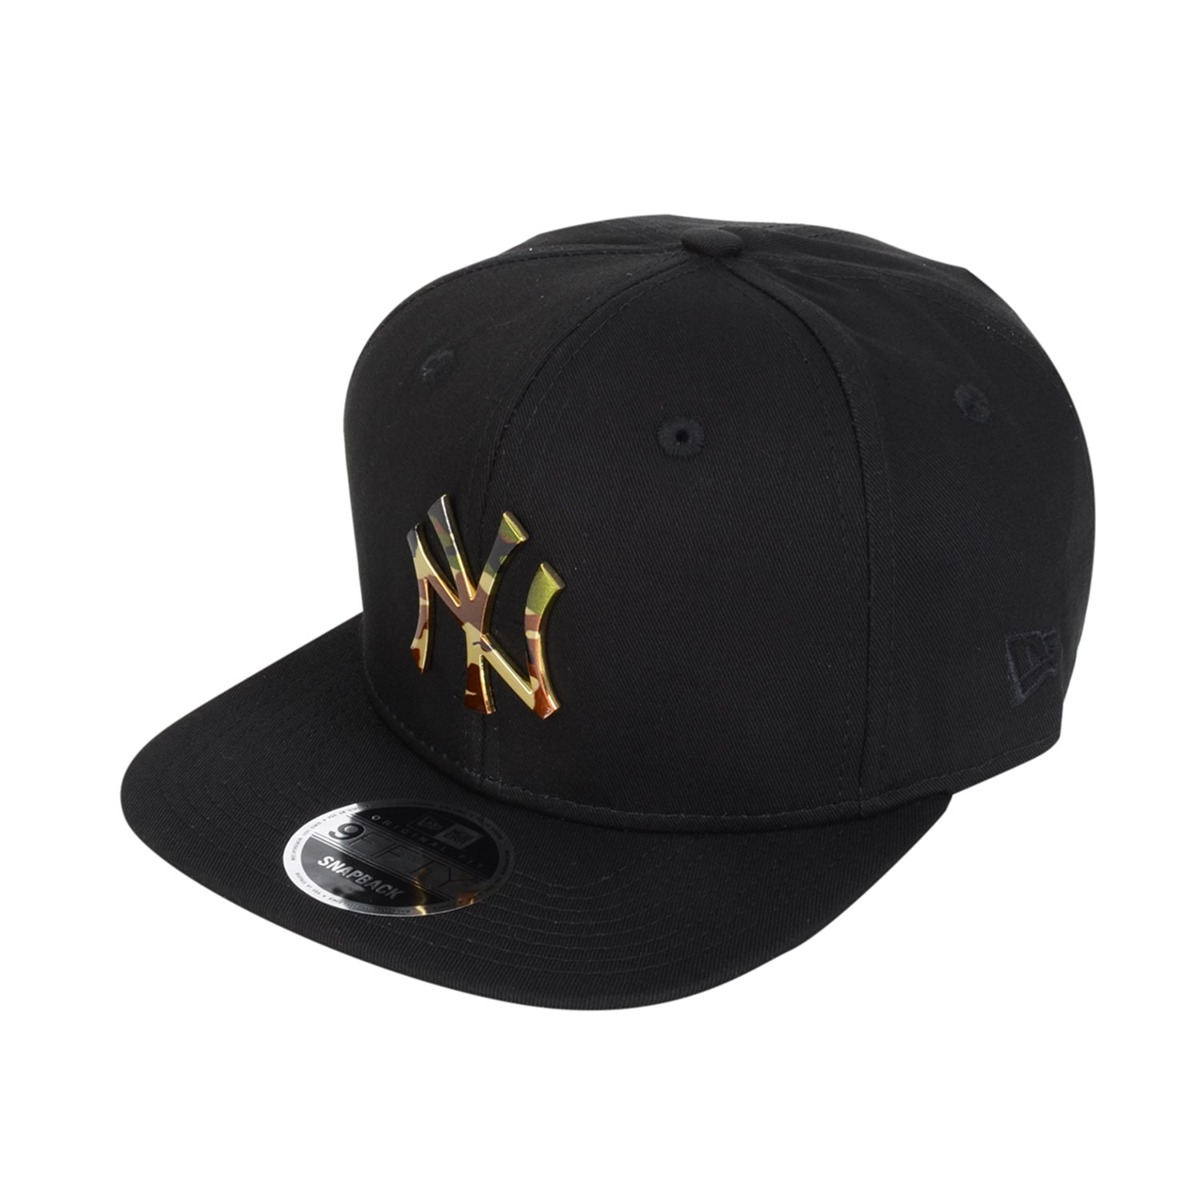 739a35eaa boné new era new york yankees camuflado metal preto. Carregando zoom.